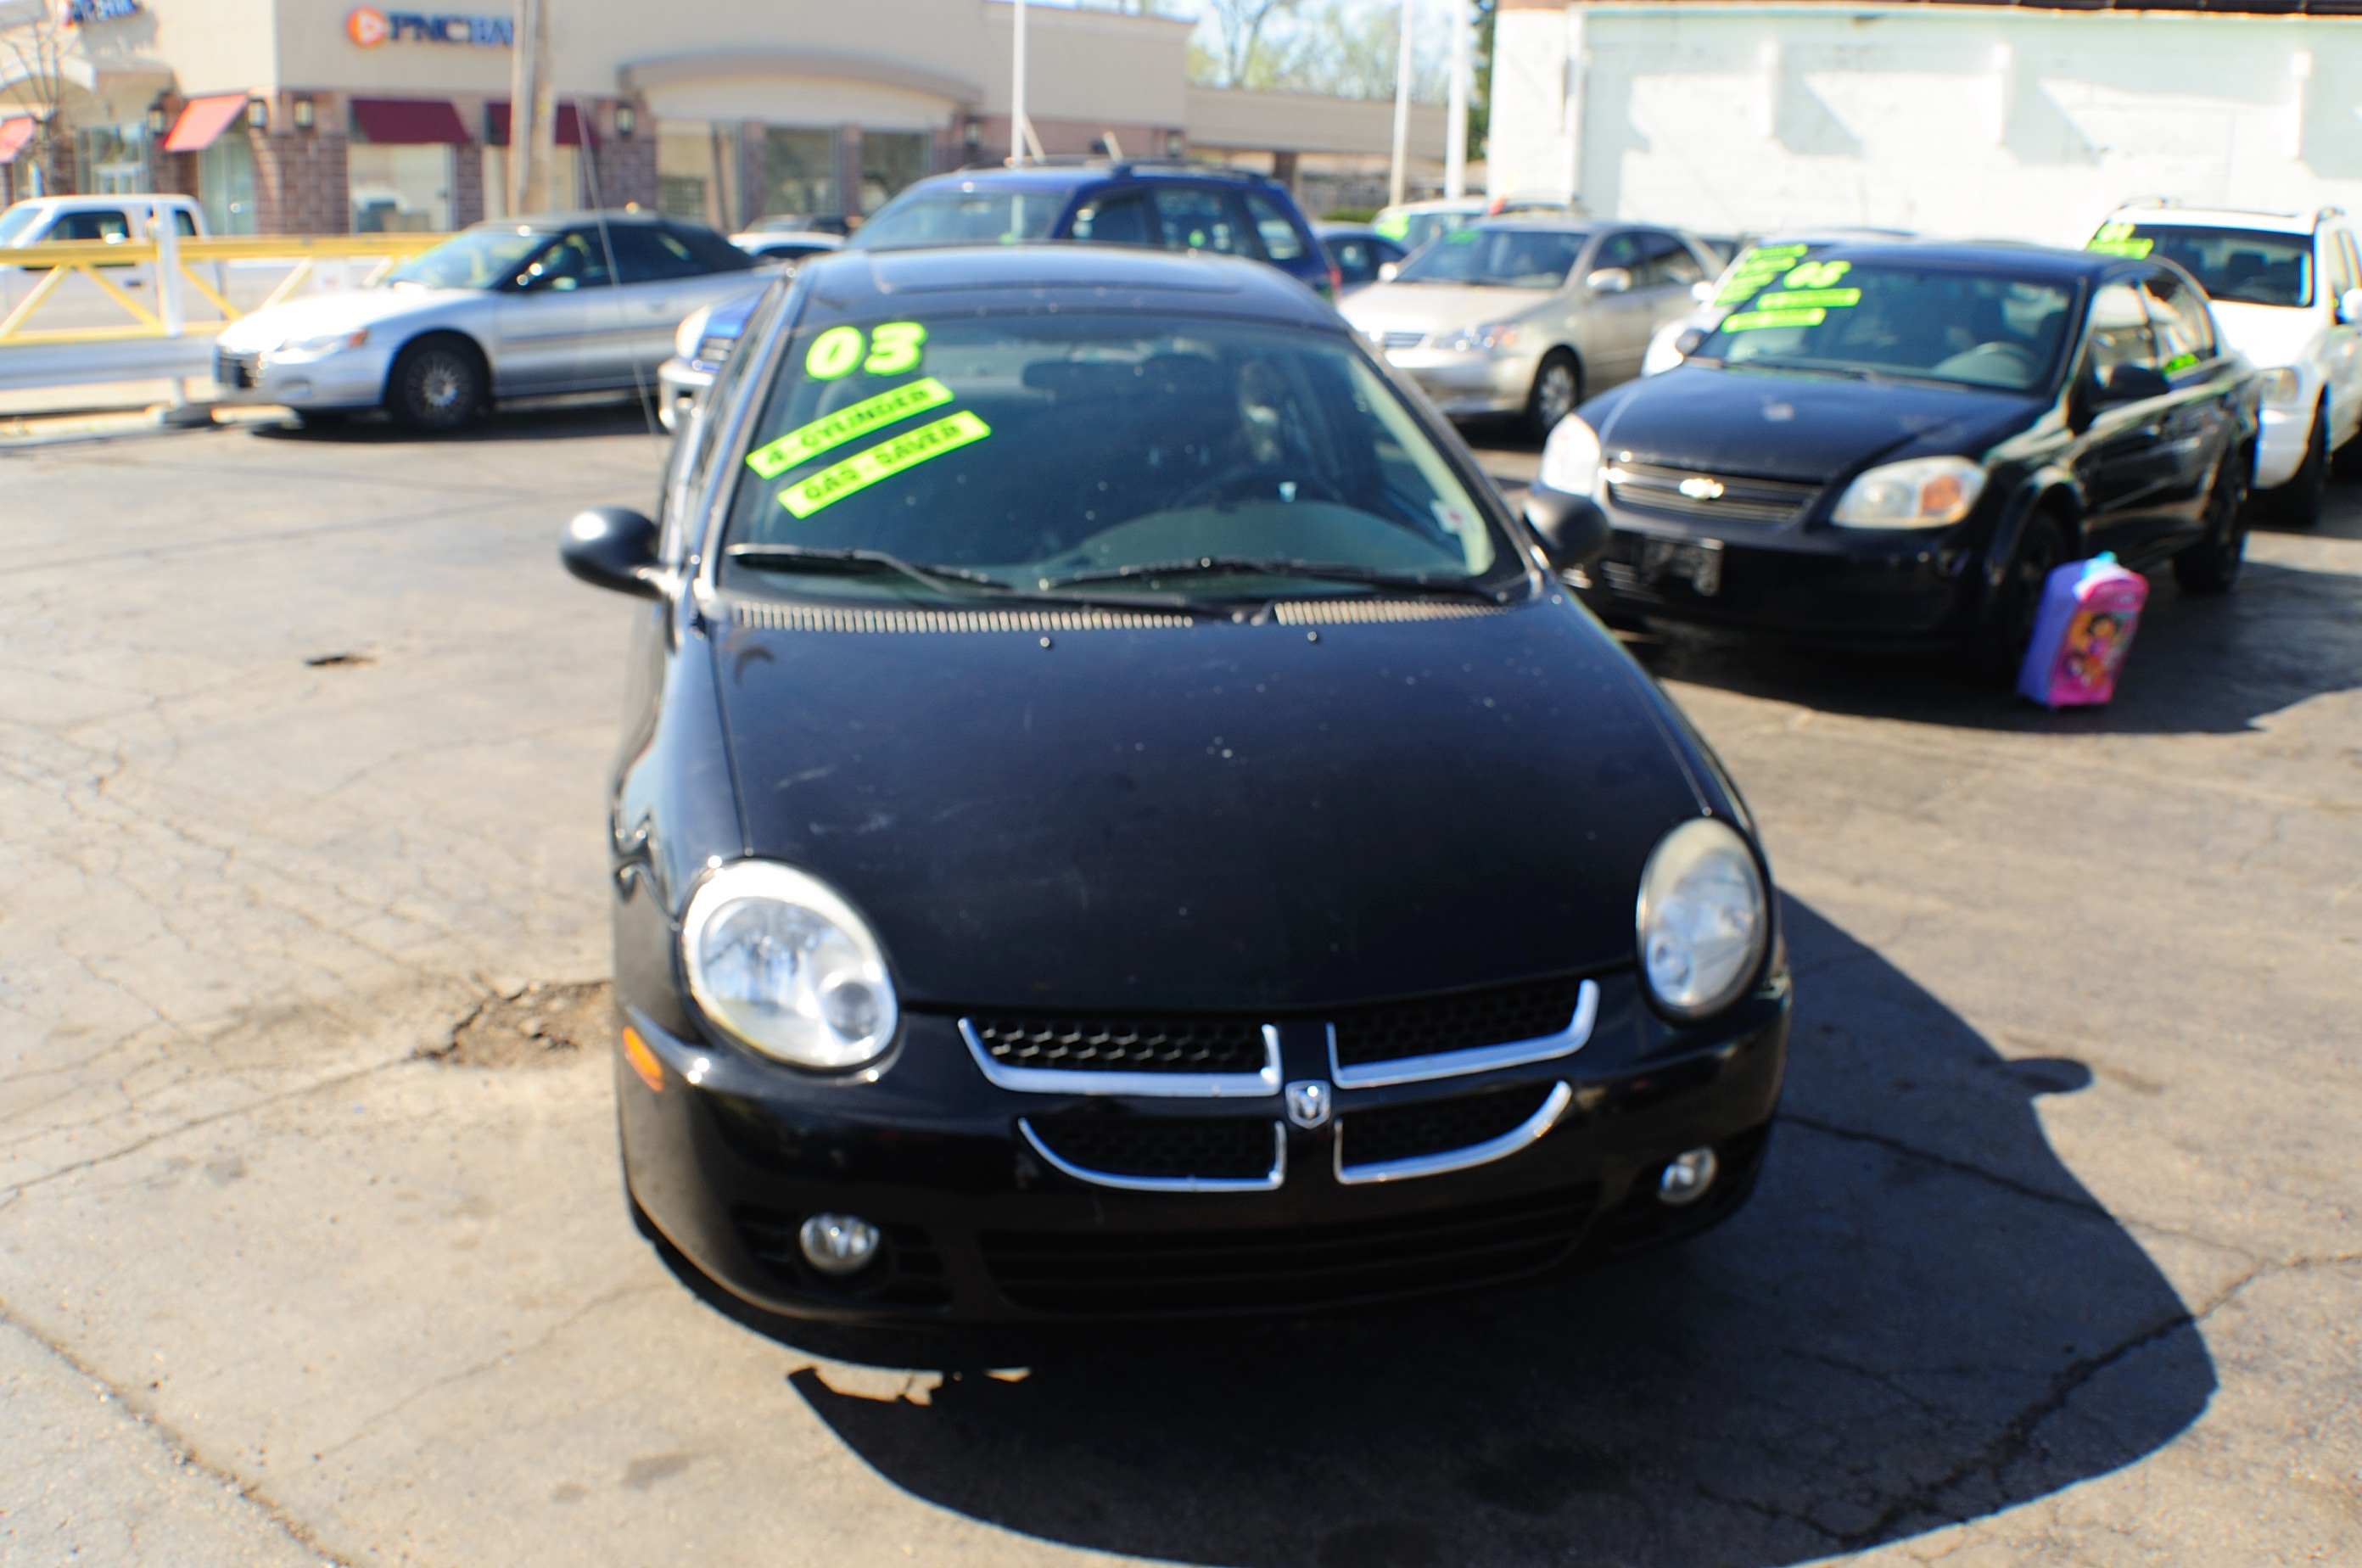 2003 Dodge Neon Black 4Dr Sedan Used Car sale Gurnee Kenosha Mchenry Chicago Illinois